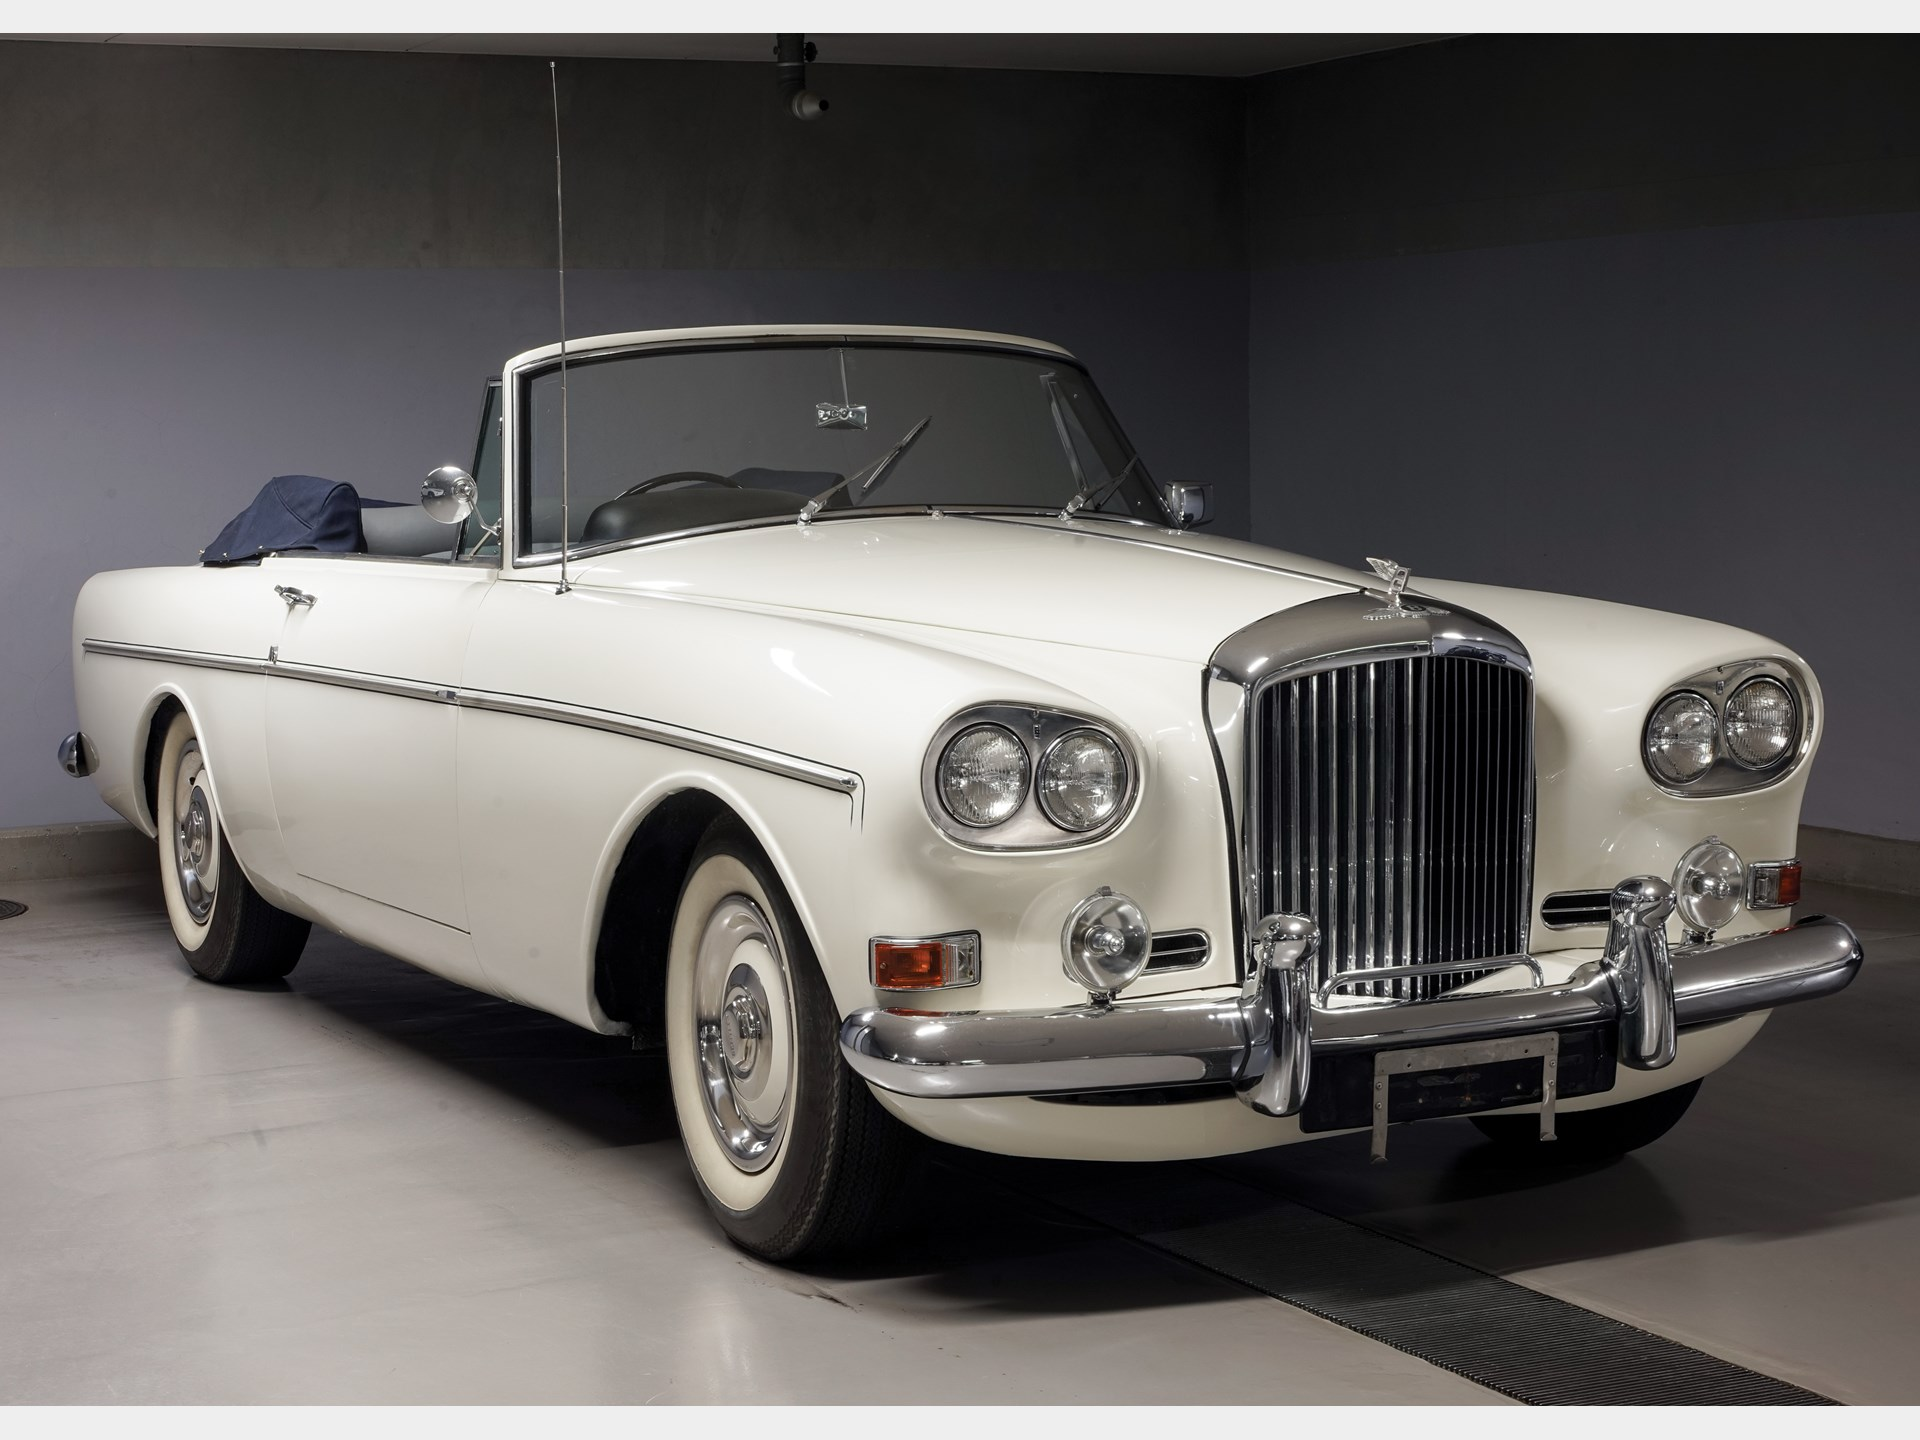 1964 Bentley S3 Continental Drophead Coupé by Mulliner Park Ward